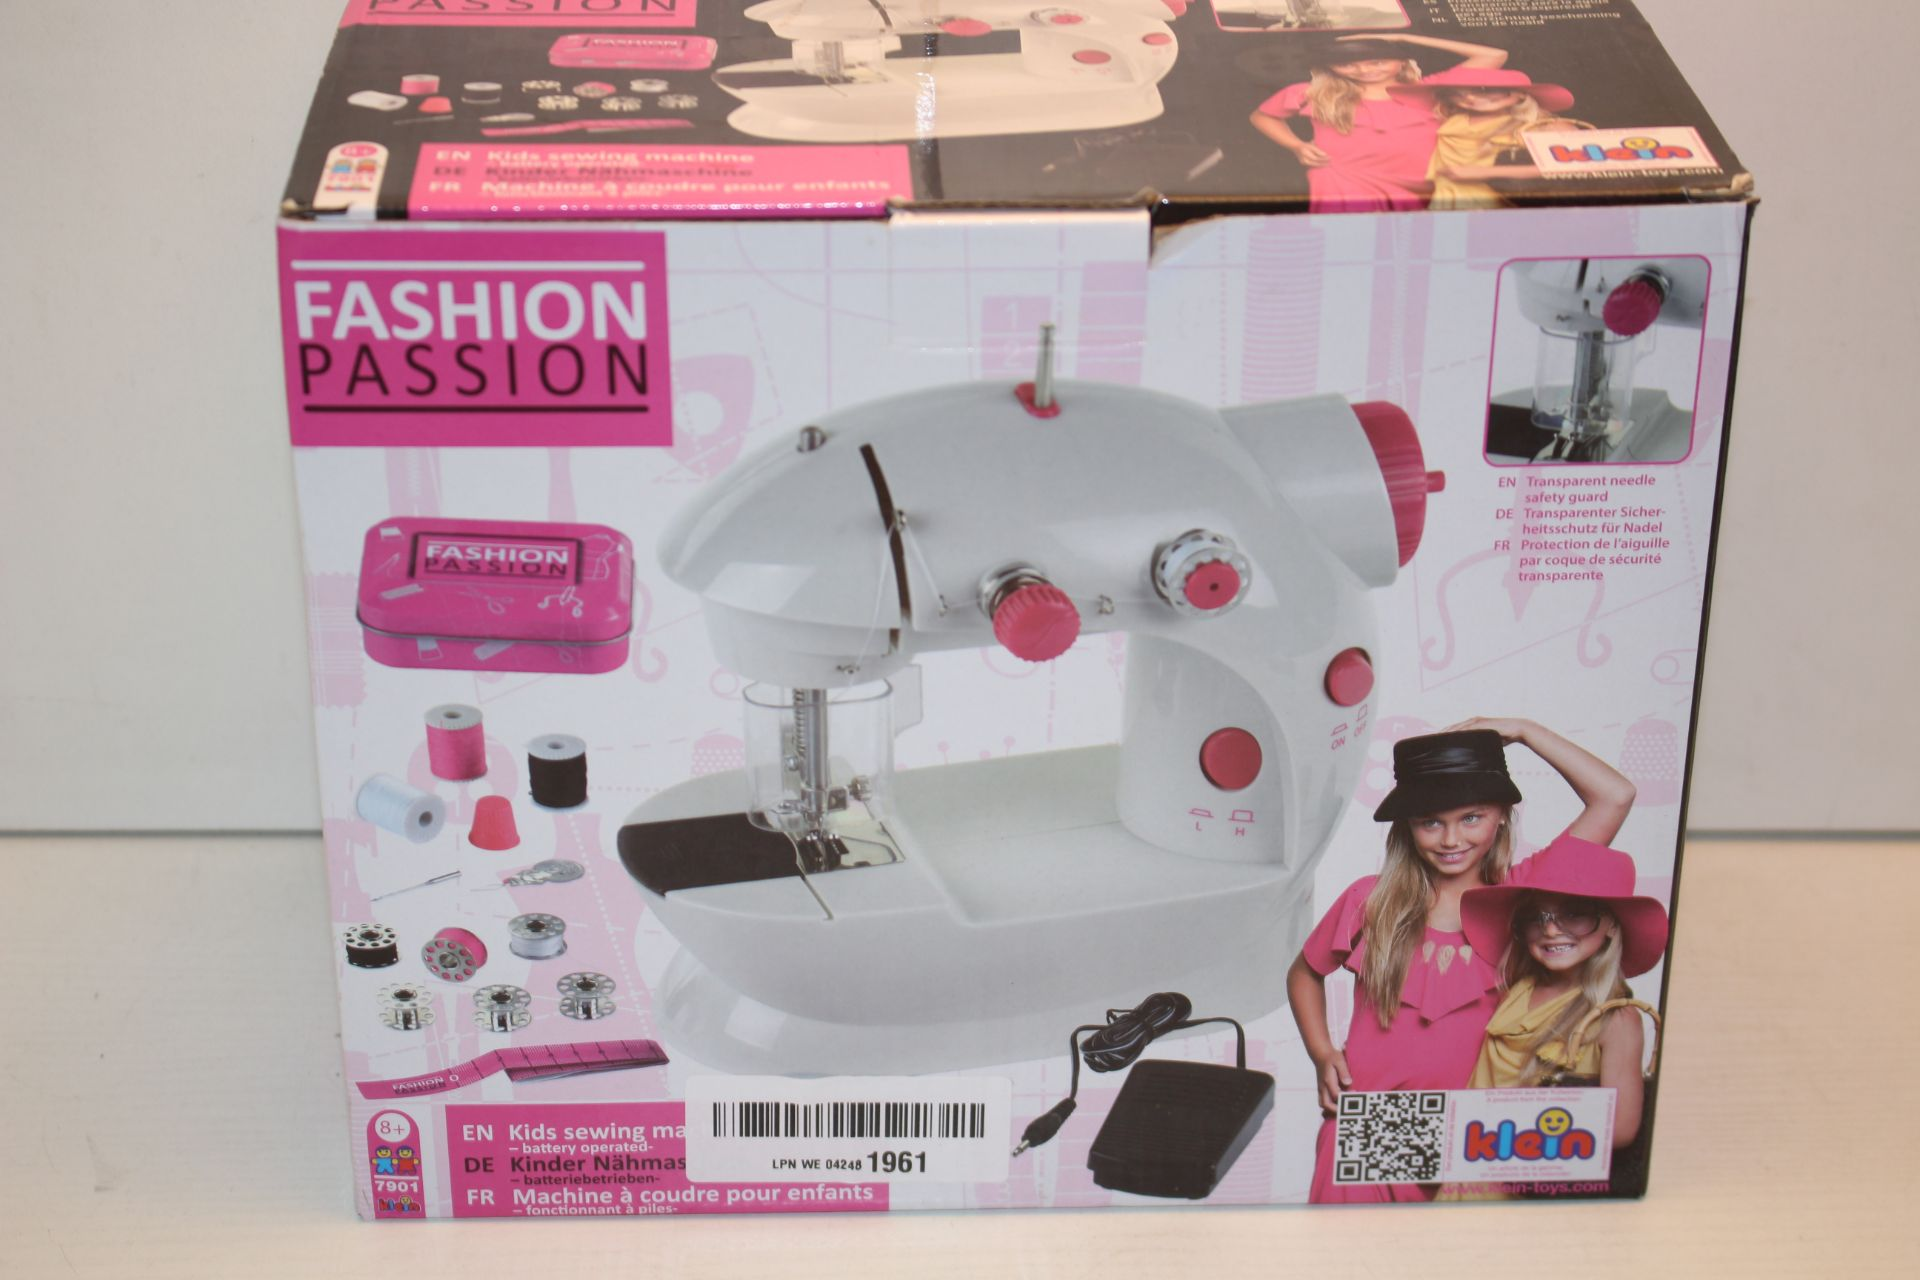 BOXED FASHION PASSION KIDS SEWING MACHINE RRP £39.99Condition ReportAppraisal Available on